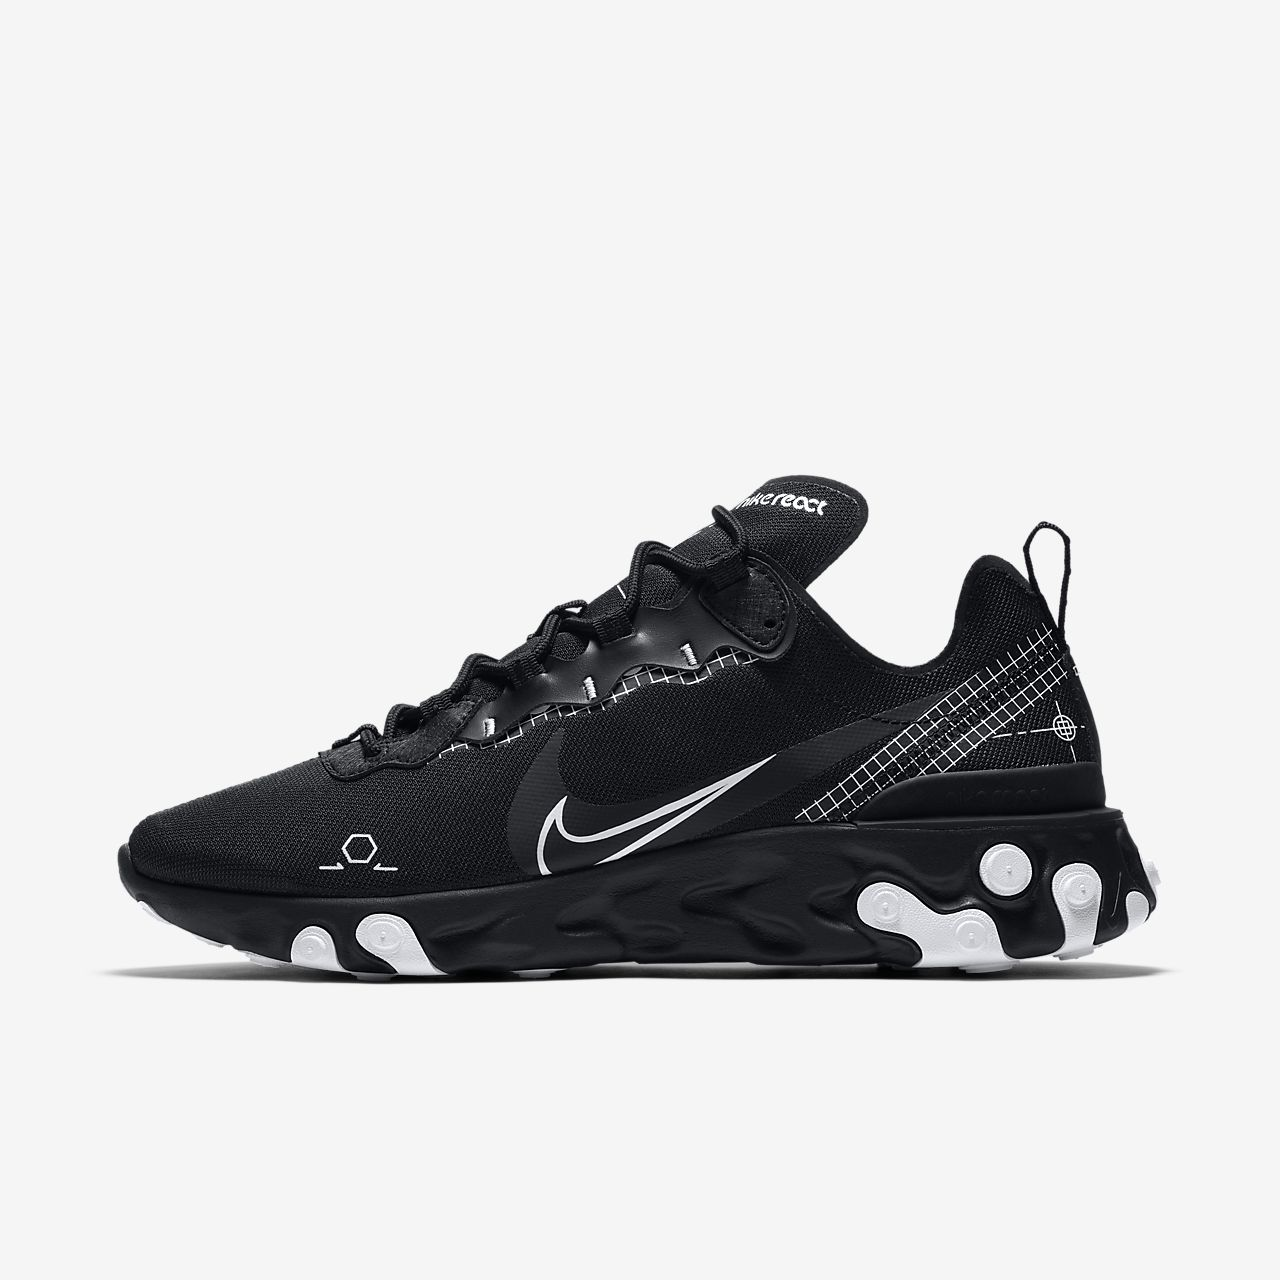 famoso repollo famélico  buy nike react element 55 Off 58% - gupteshworcave.com.np